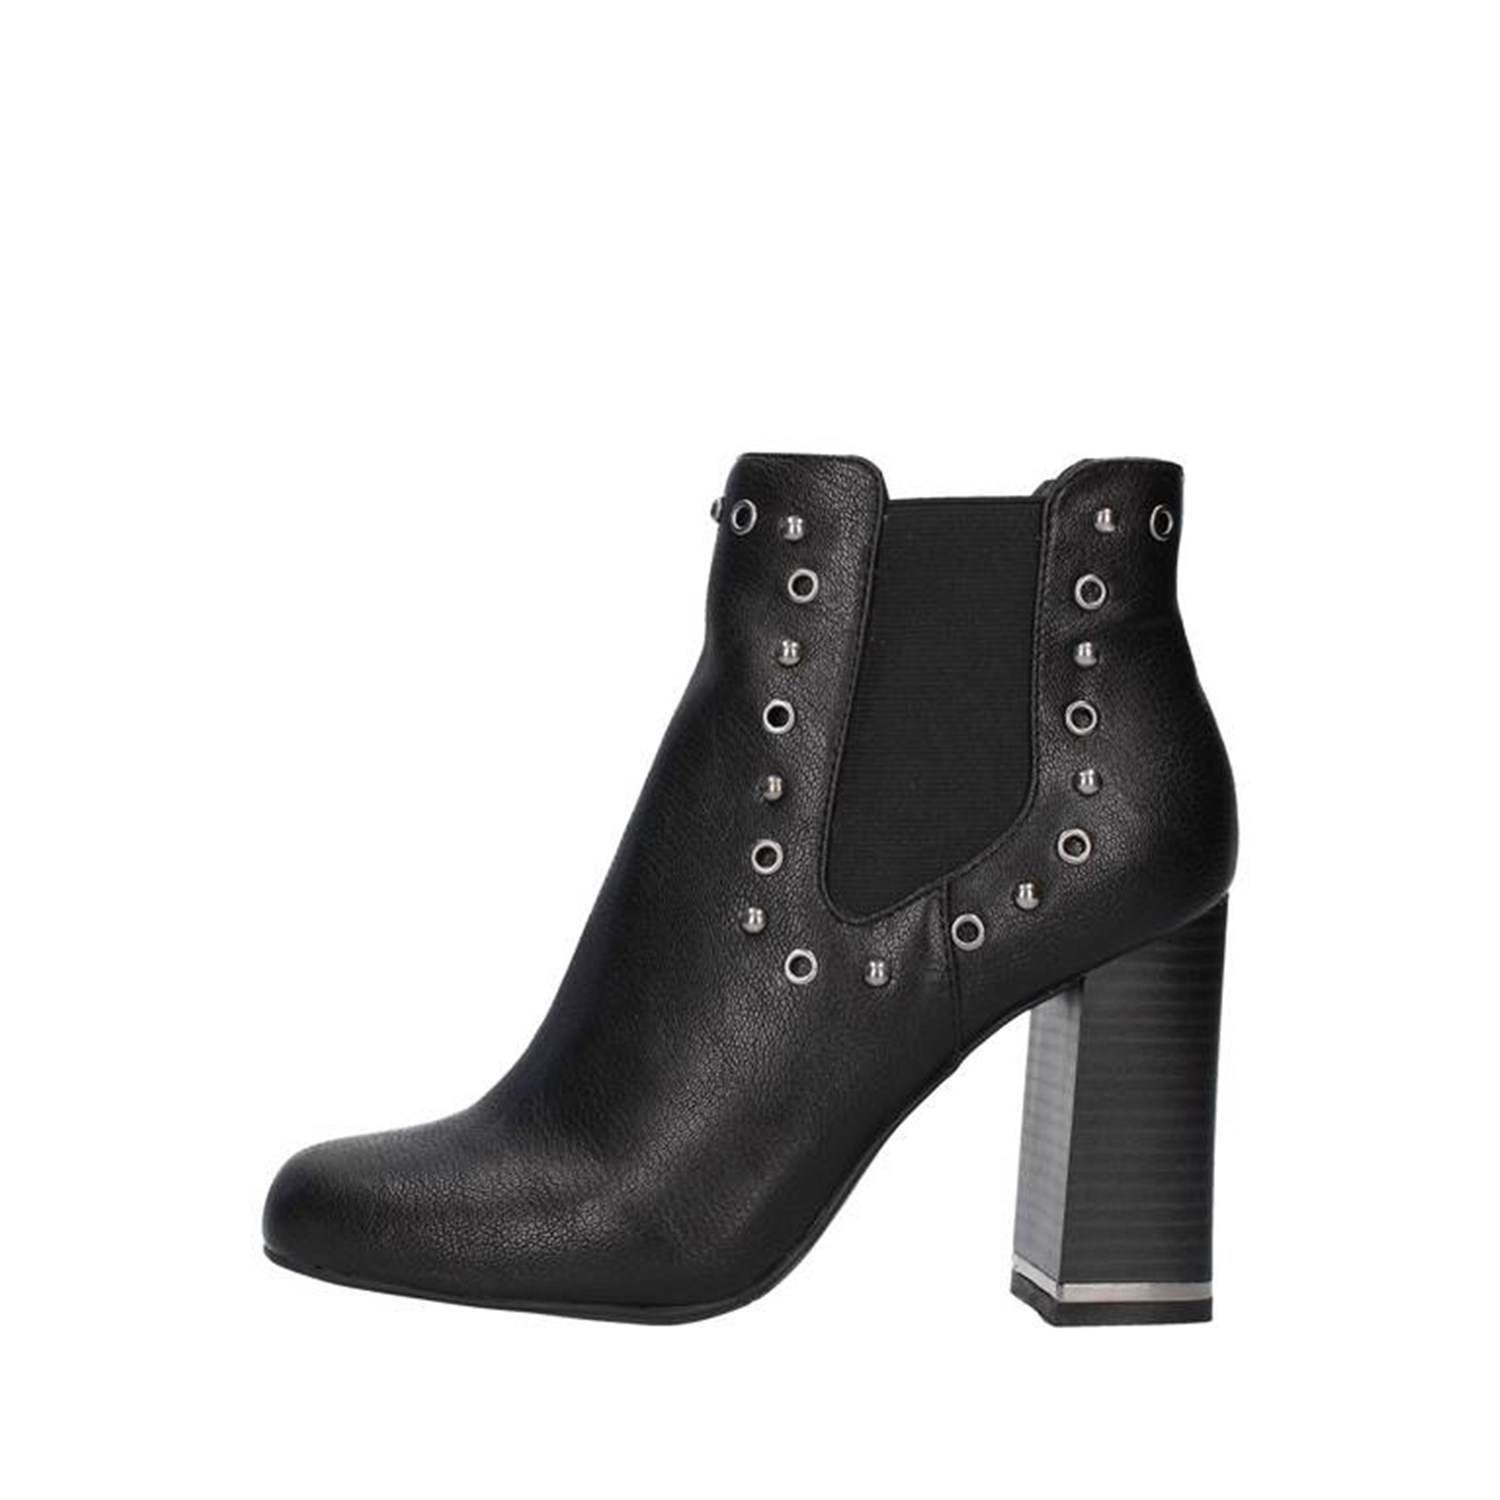 Gattinoni Roma Shoes Woman boots BLACK 0774WCA